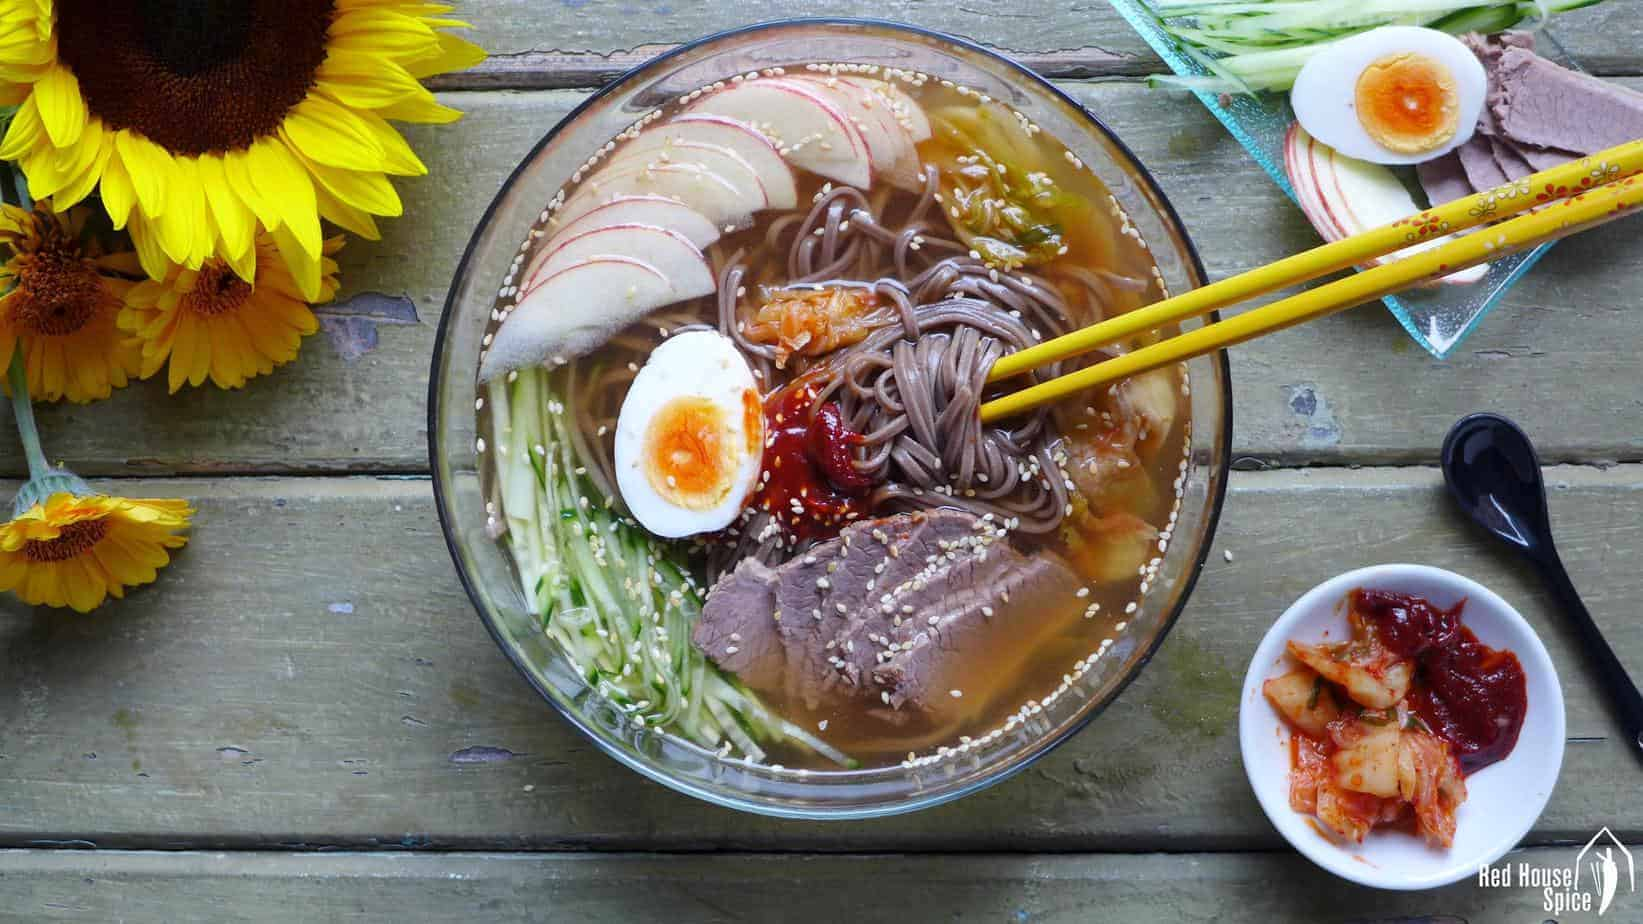 Cold soba noodles in beef broth (延吉冷面)